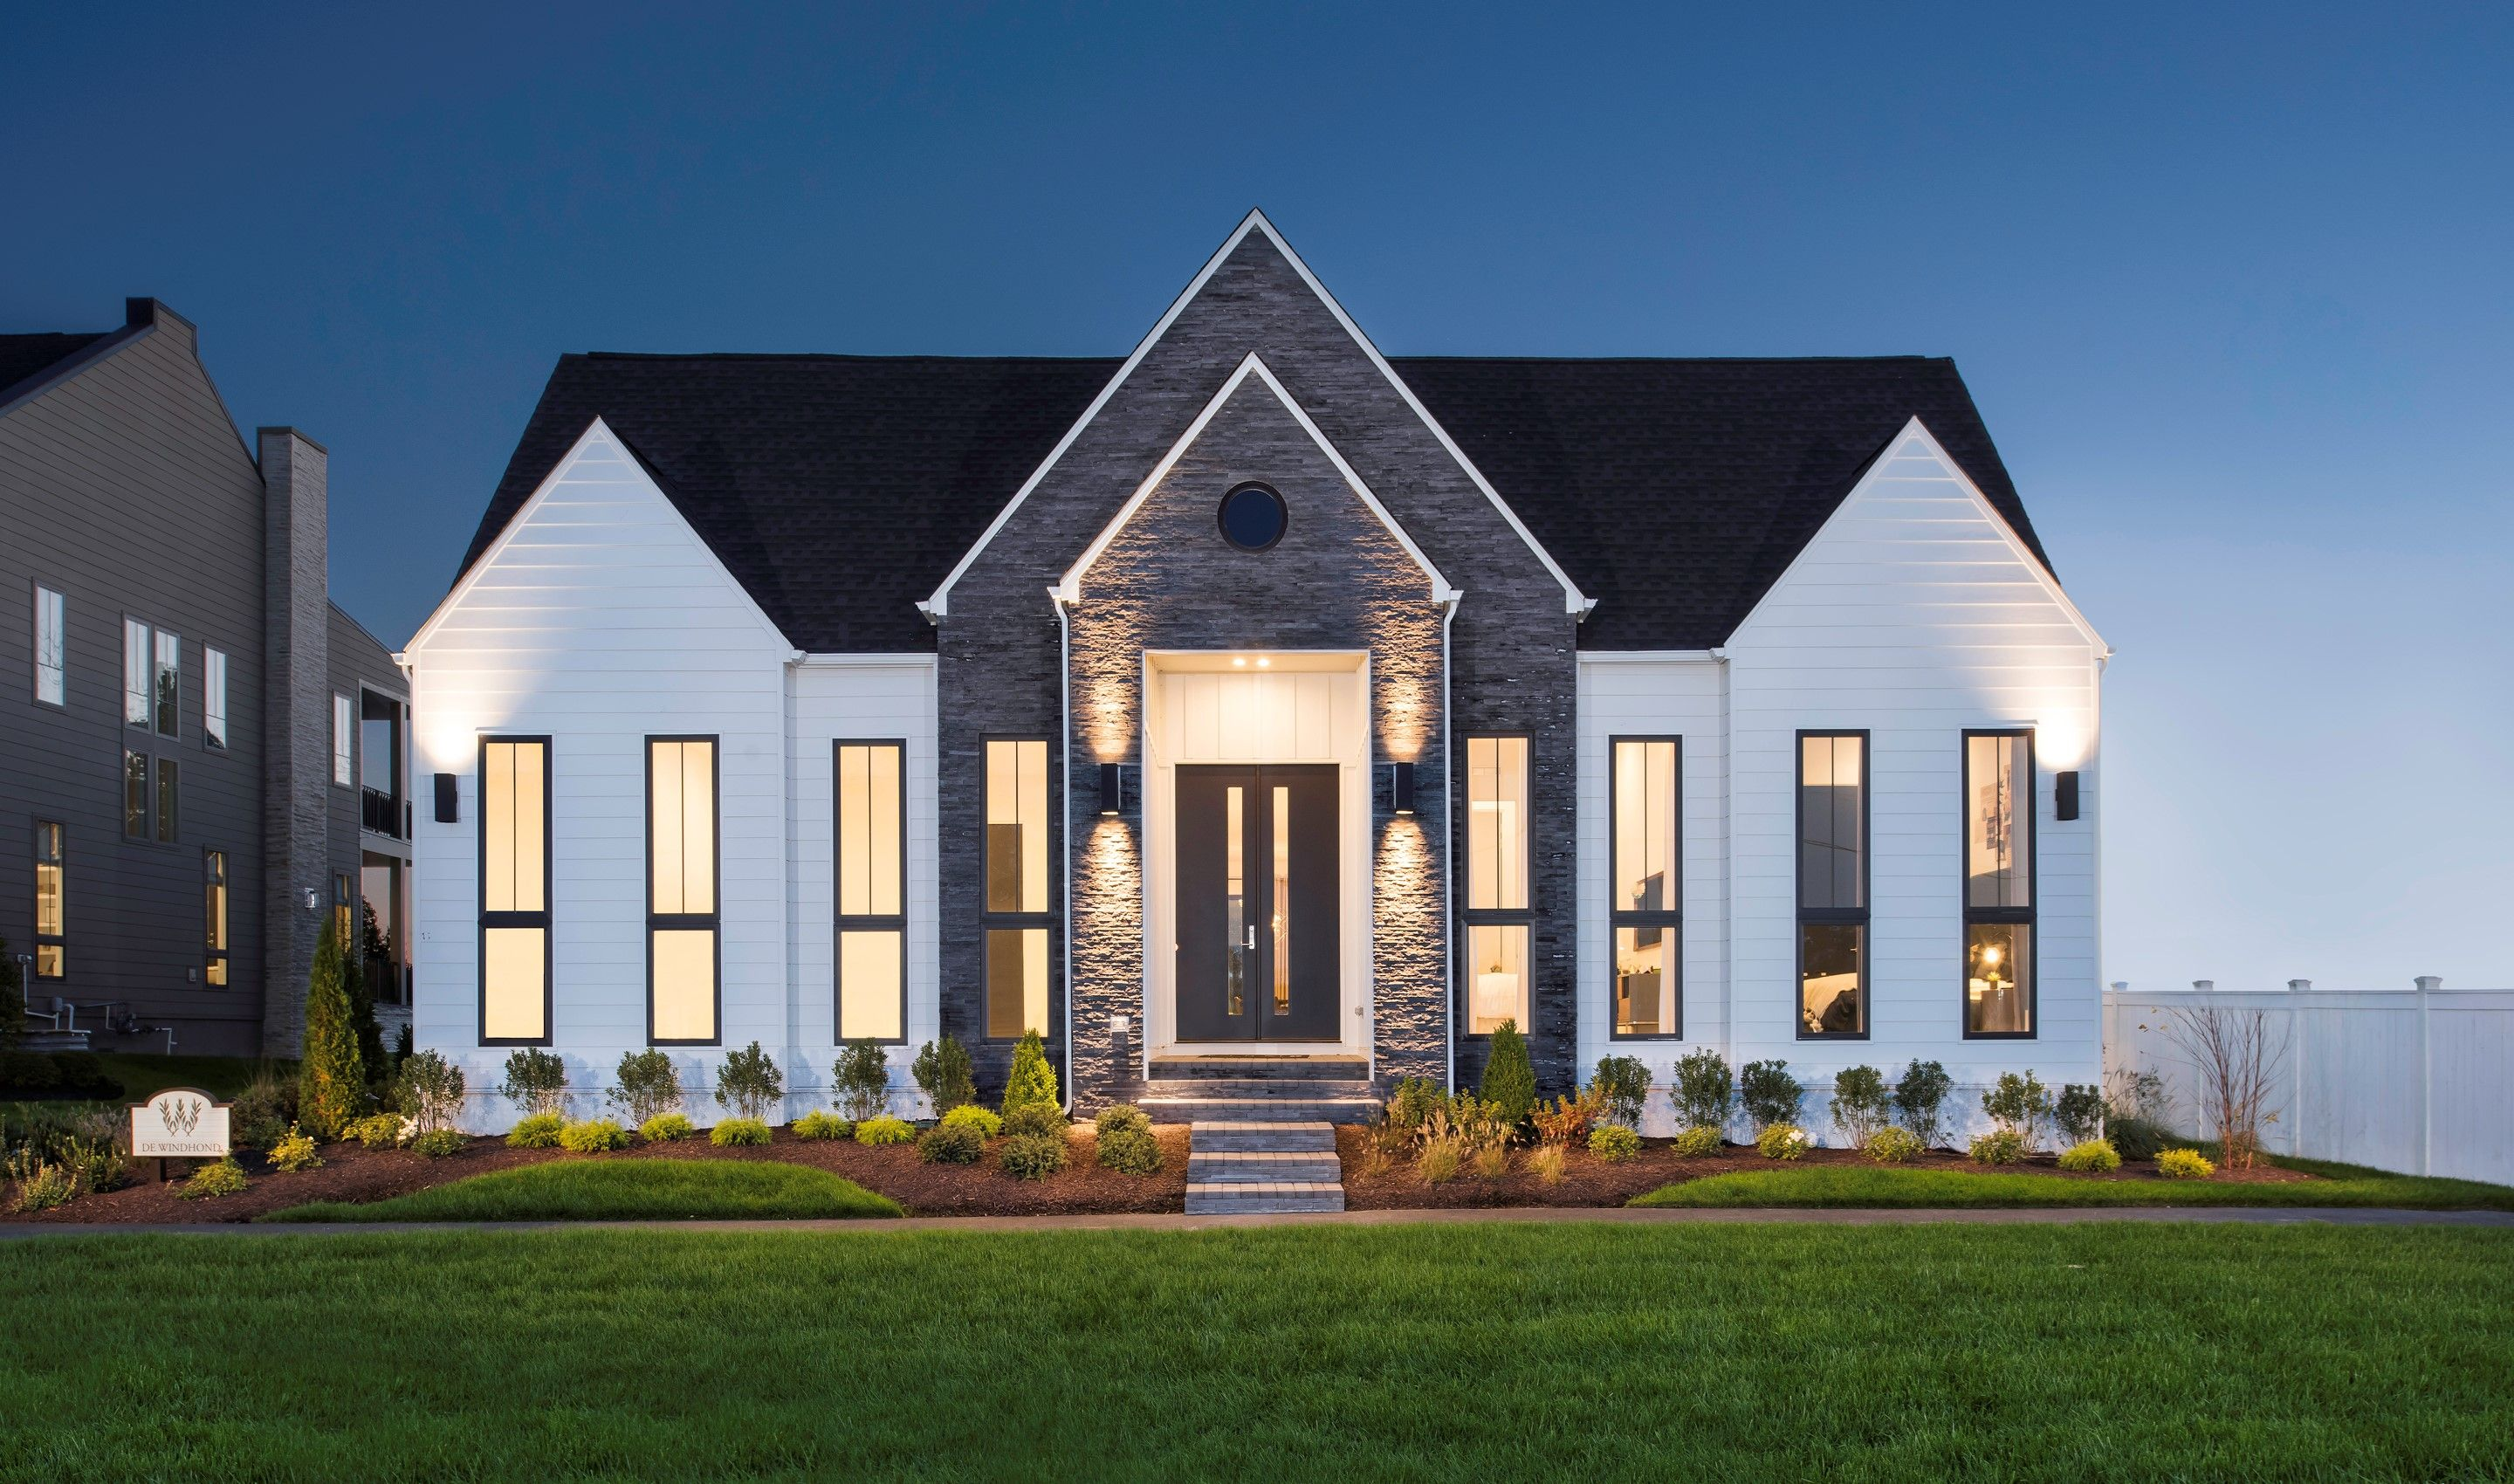 Single Family for Active at De Zoeker 40987 Spanglegrass Court, Homesite 19 Aldie, Virginia 20105 United States